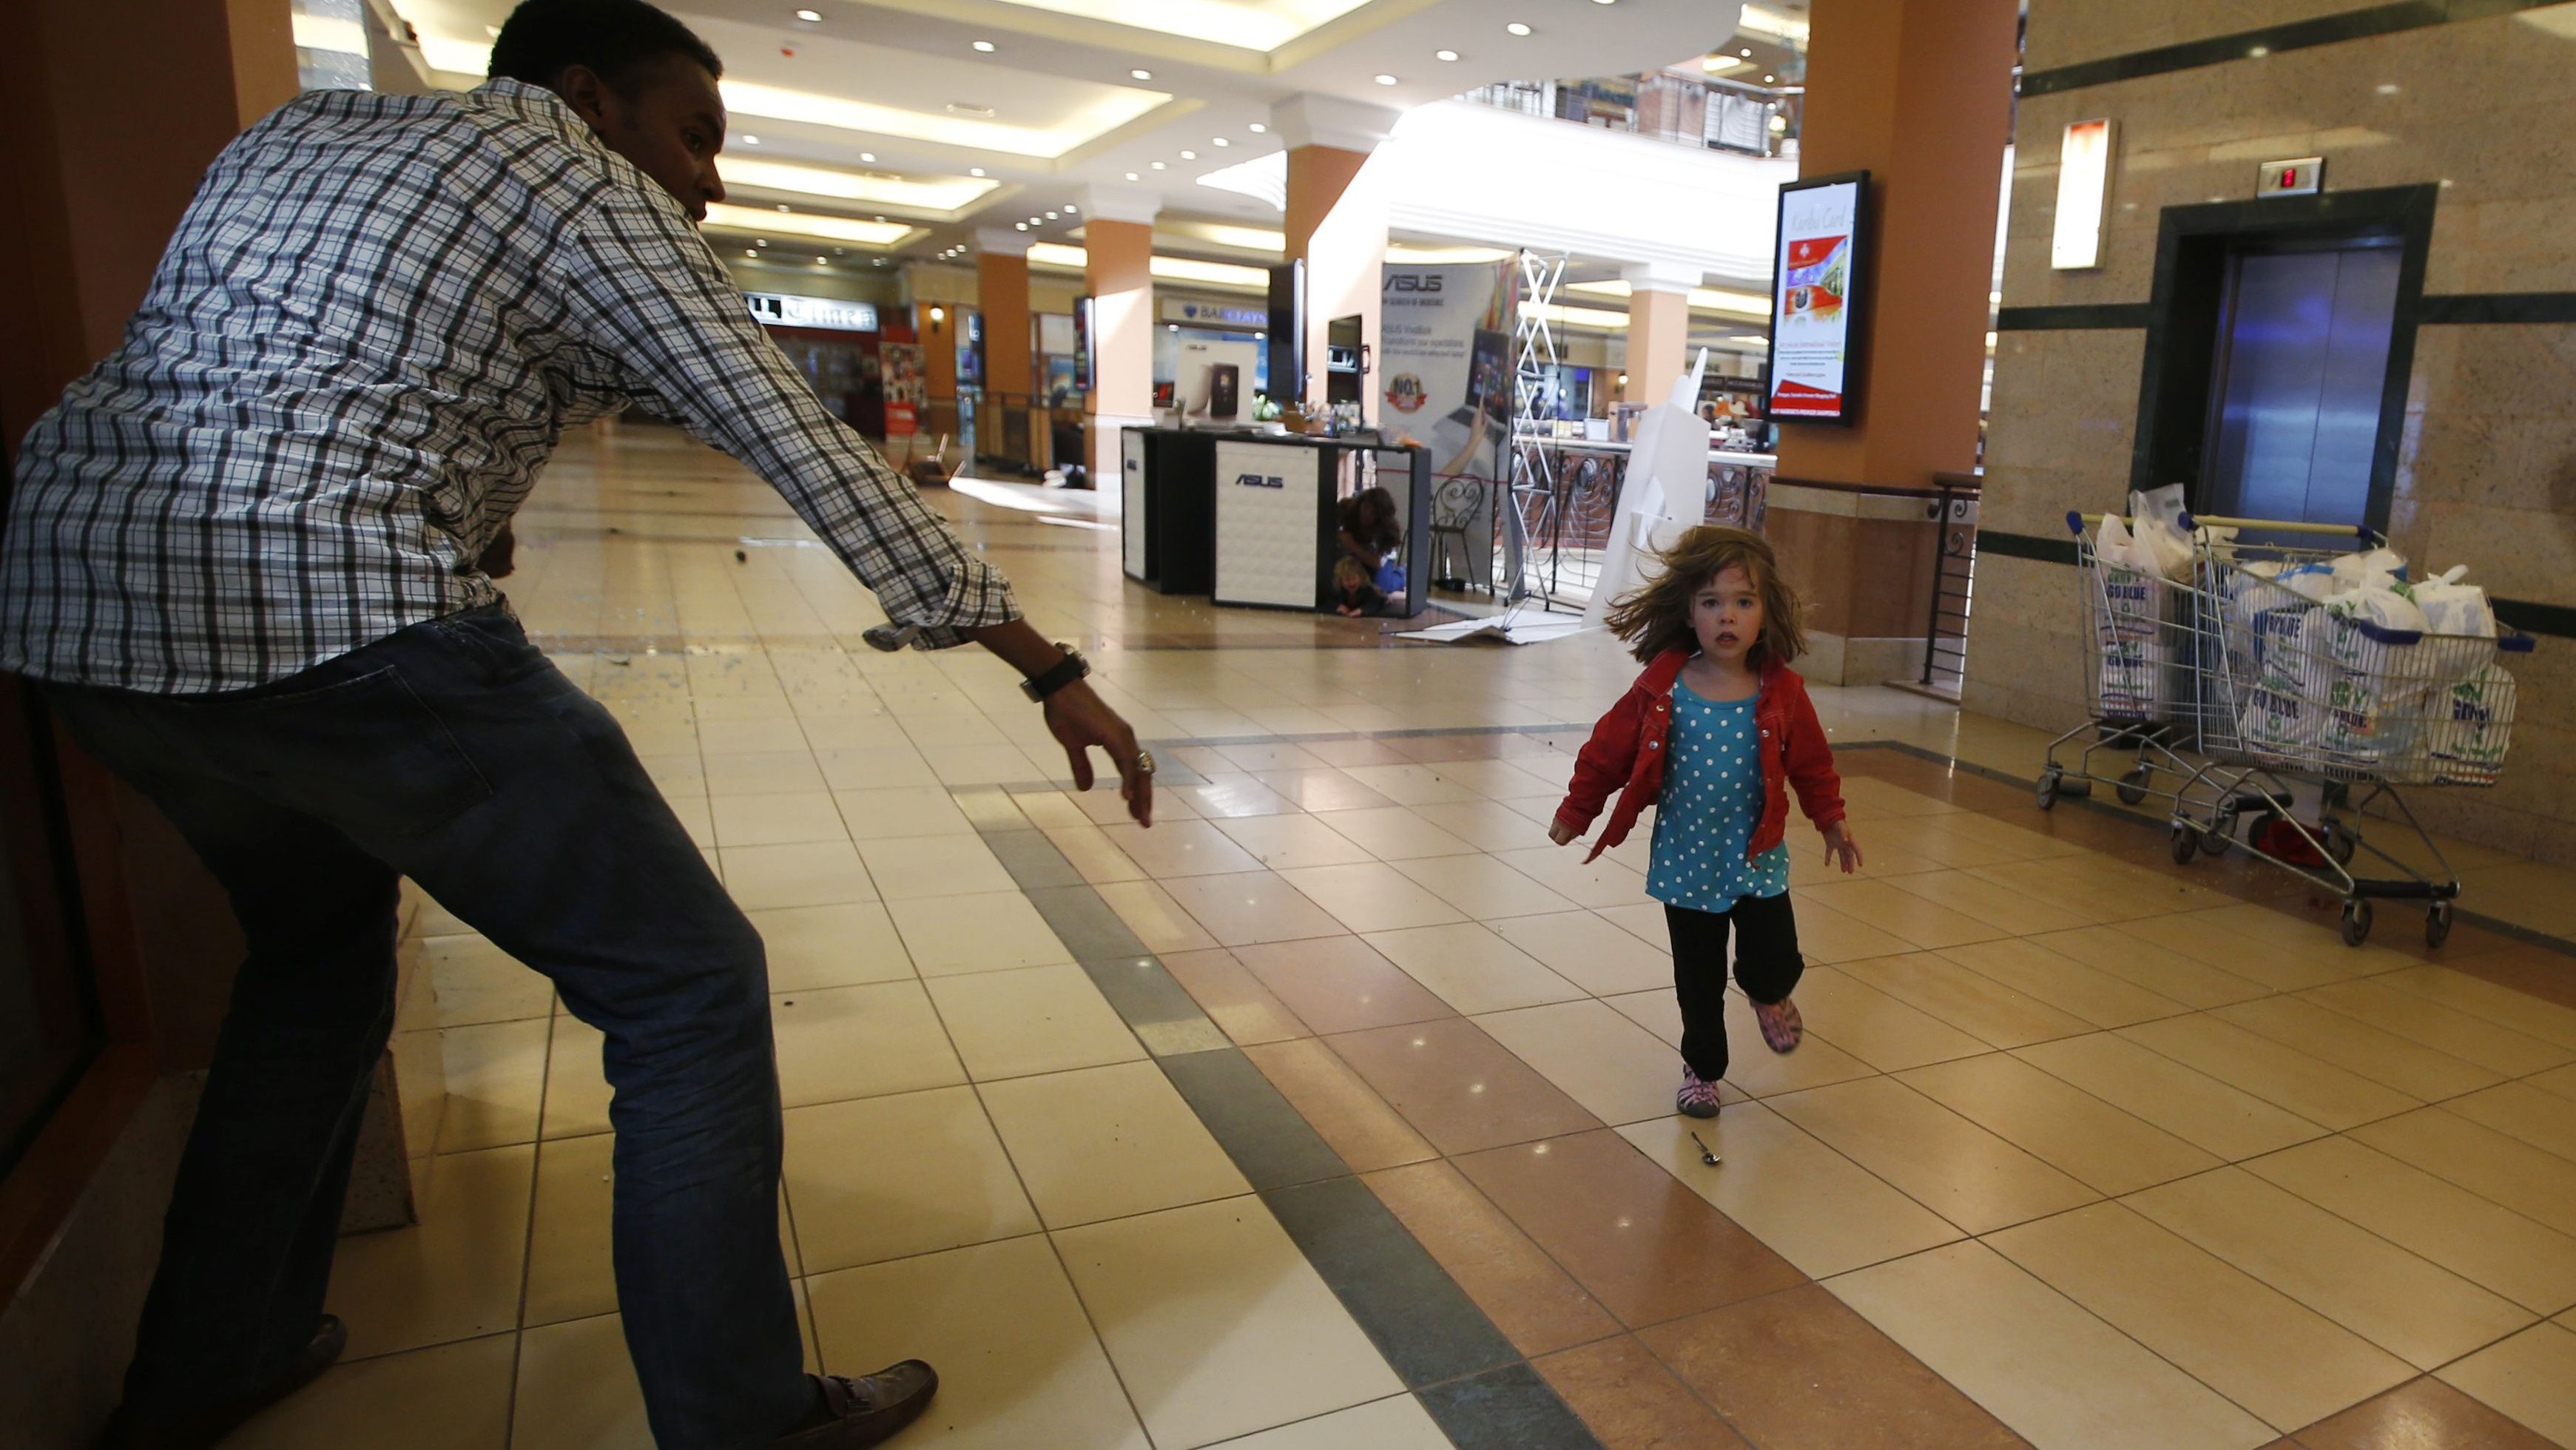 A child runs to safety as armed police hunt gunmen who went on a shooting spree at Westgate shopping centre in Nairobi September 21, 2013. The gunmen stormed a shopping mall in Nairobi on Saturday killing at least 20 people in what Kenya's government said could be a terrorist attack, and sending scores fleeing into shops, a cinema and onto the streets in search of safety.